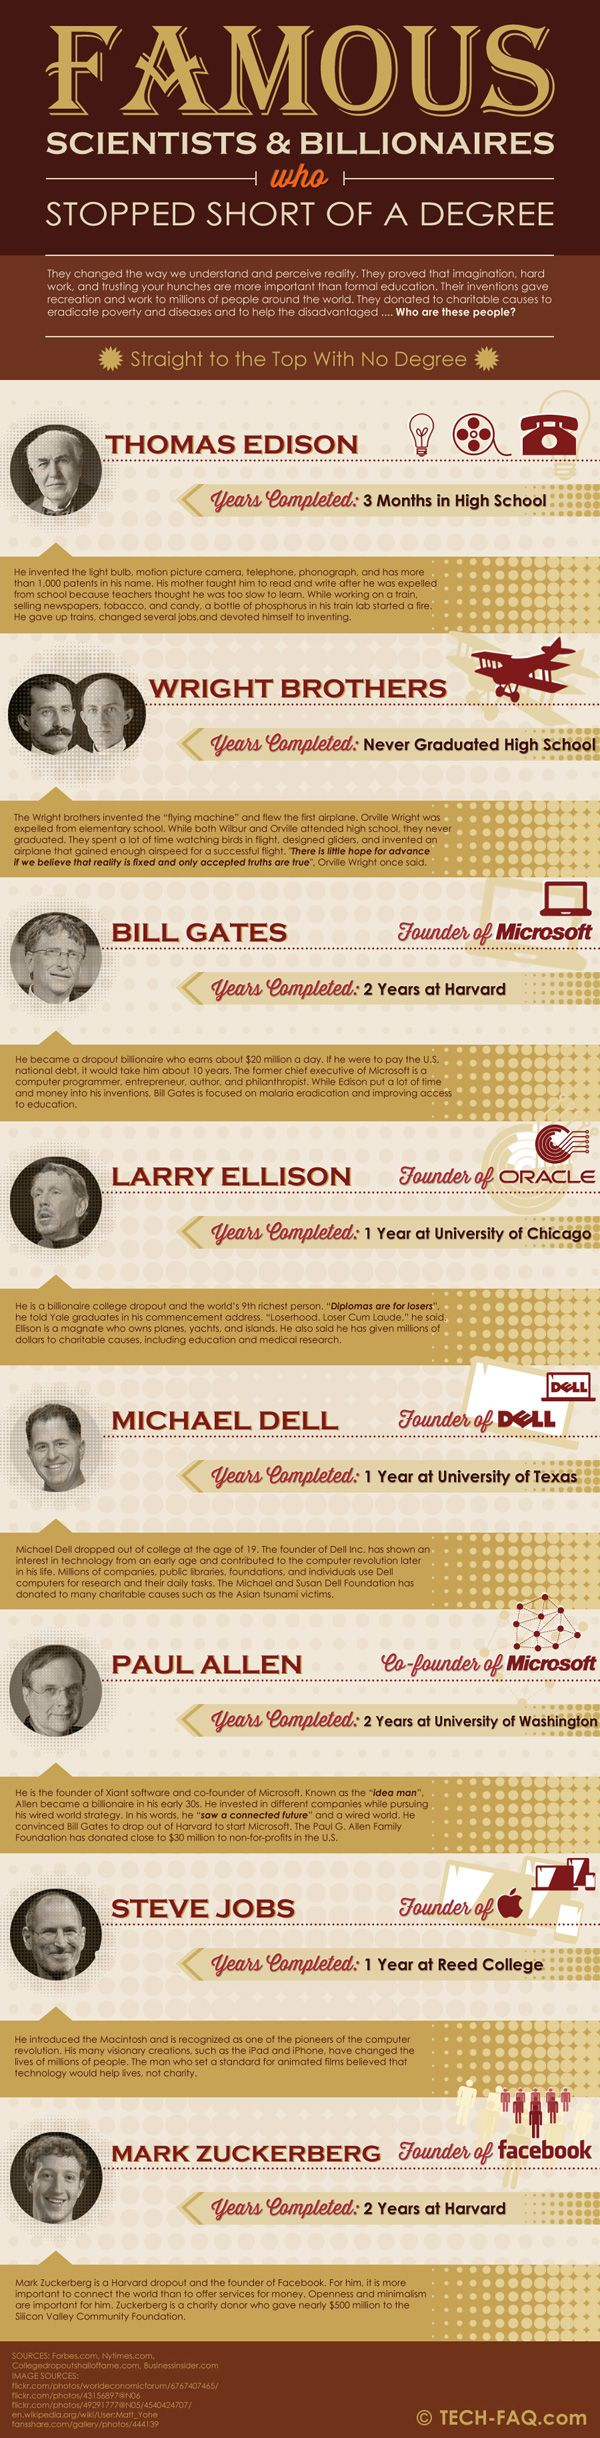 Famous Entrepreneurs Who Dropped Out of School